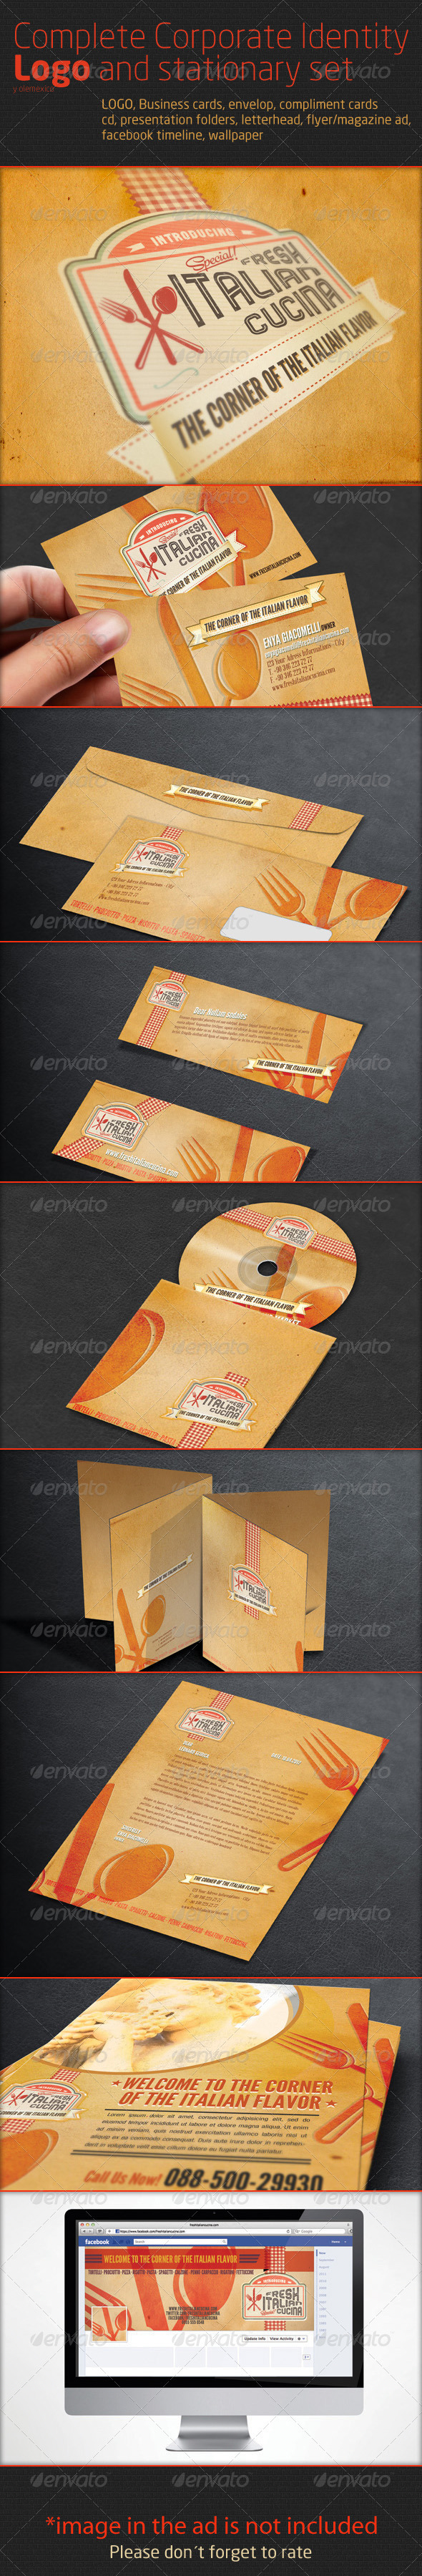 GraphicRiver Complete Corporate Identity Logo and stationary se 2665767